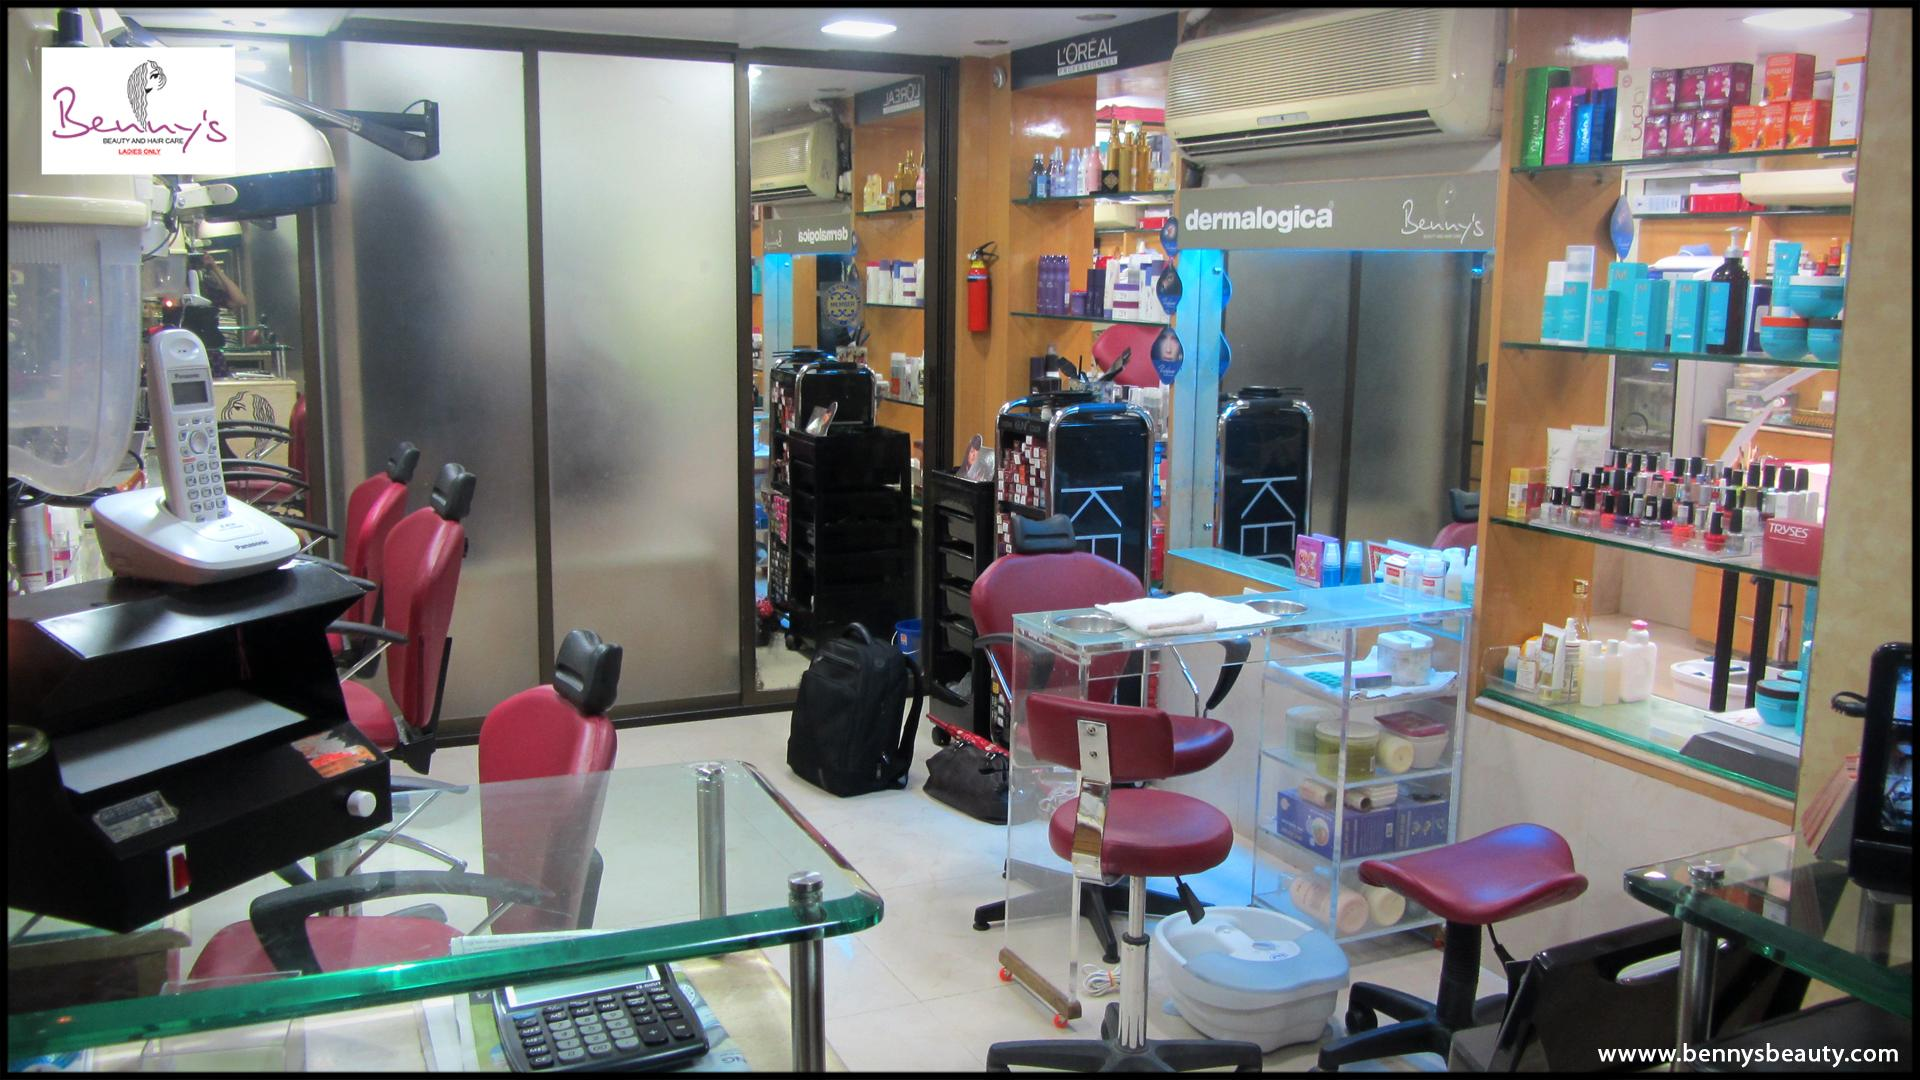 Bennys-Beauty-Salon---53